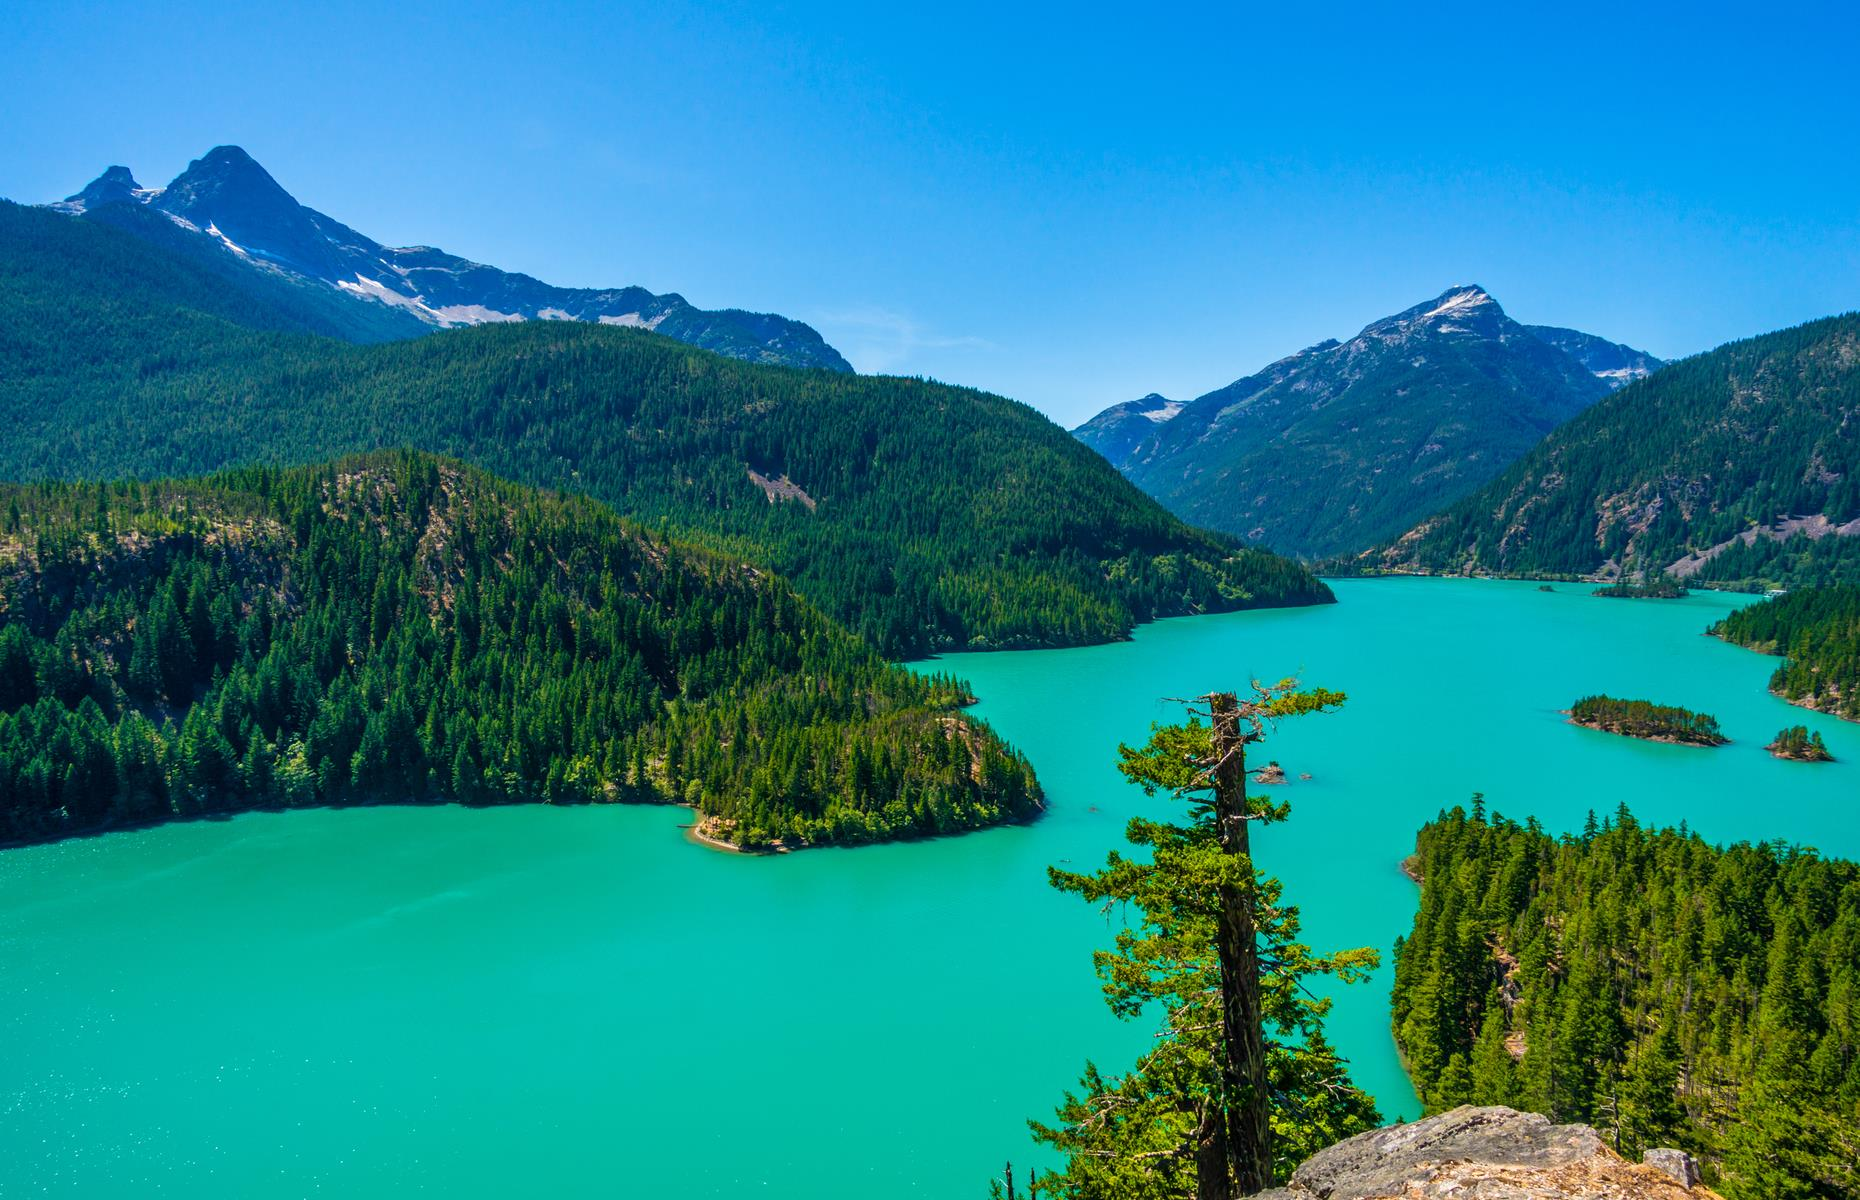 Slide 18 of 31: Many lakes are described as turquoise but Diablo Lake outdoes them all. Its vivid appearance is caused by flour-like particles ground from the rock of surrounding glaciers, and illuminated by sunlight. The result is breathtaking.